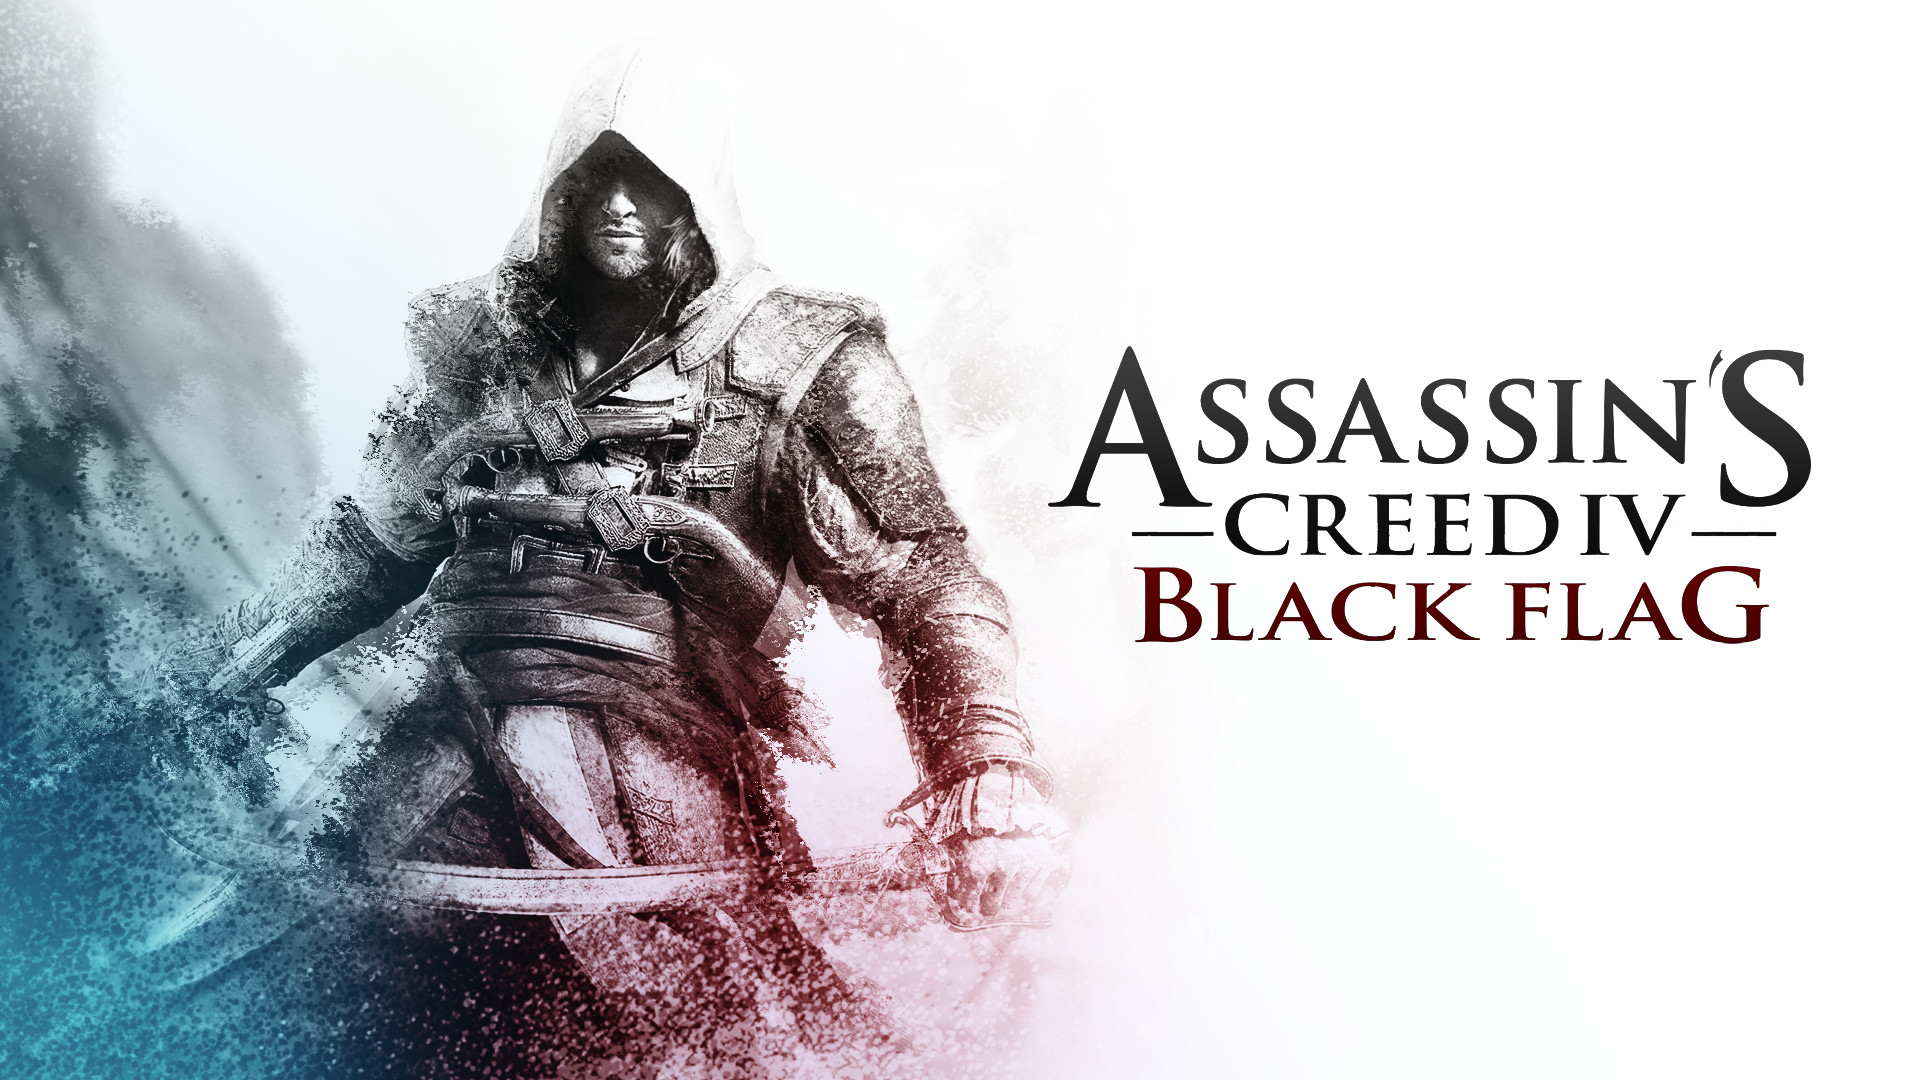 Assassin's Creed IV Black Flag Wallpapers